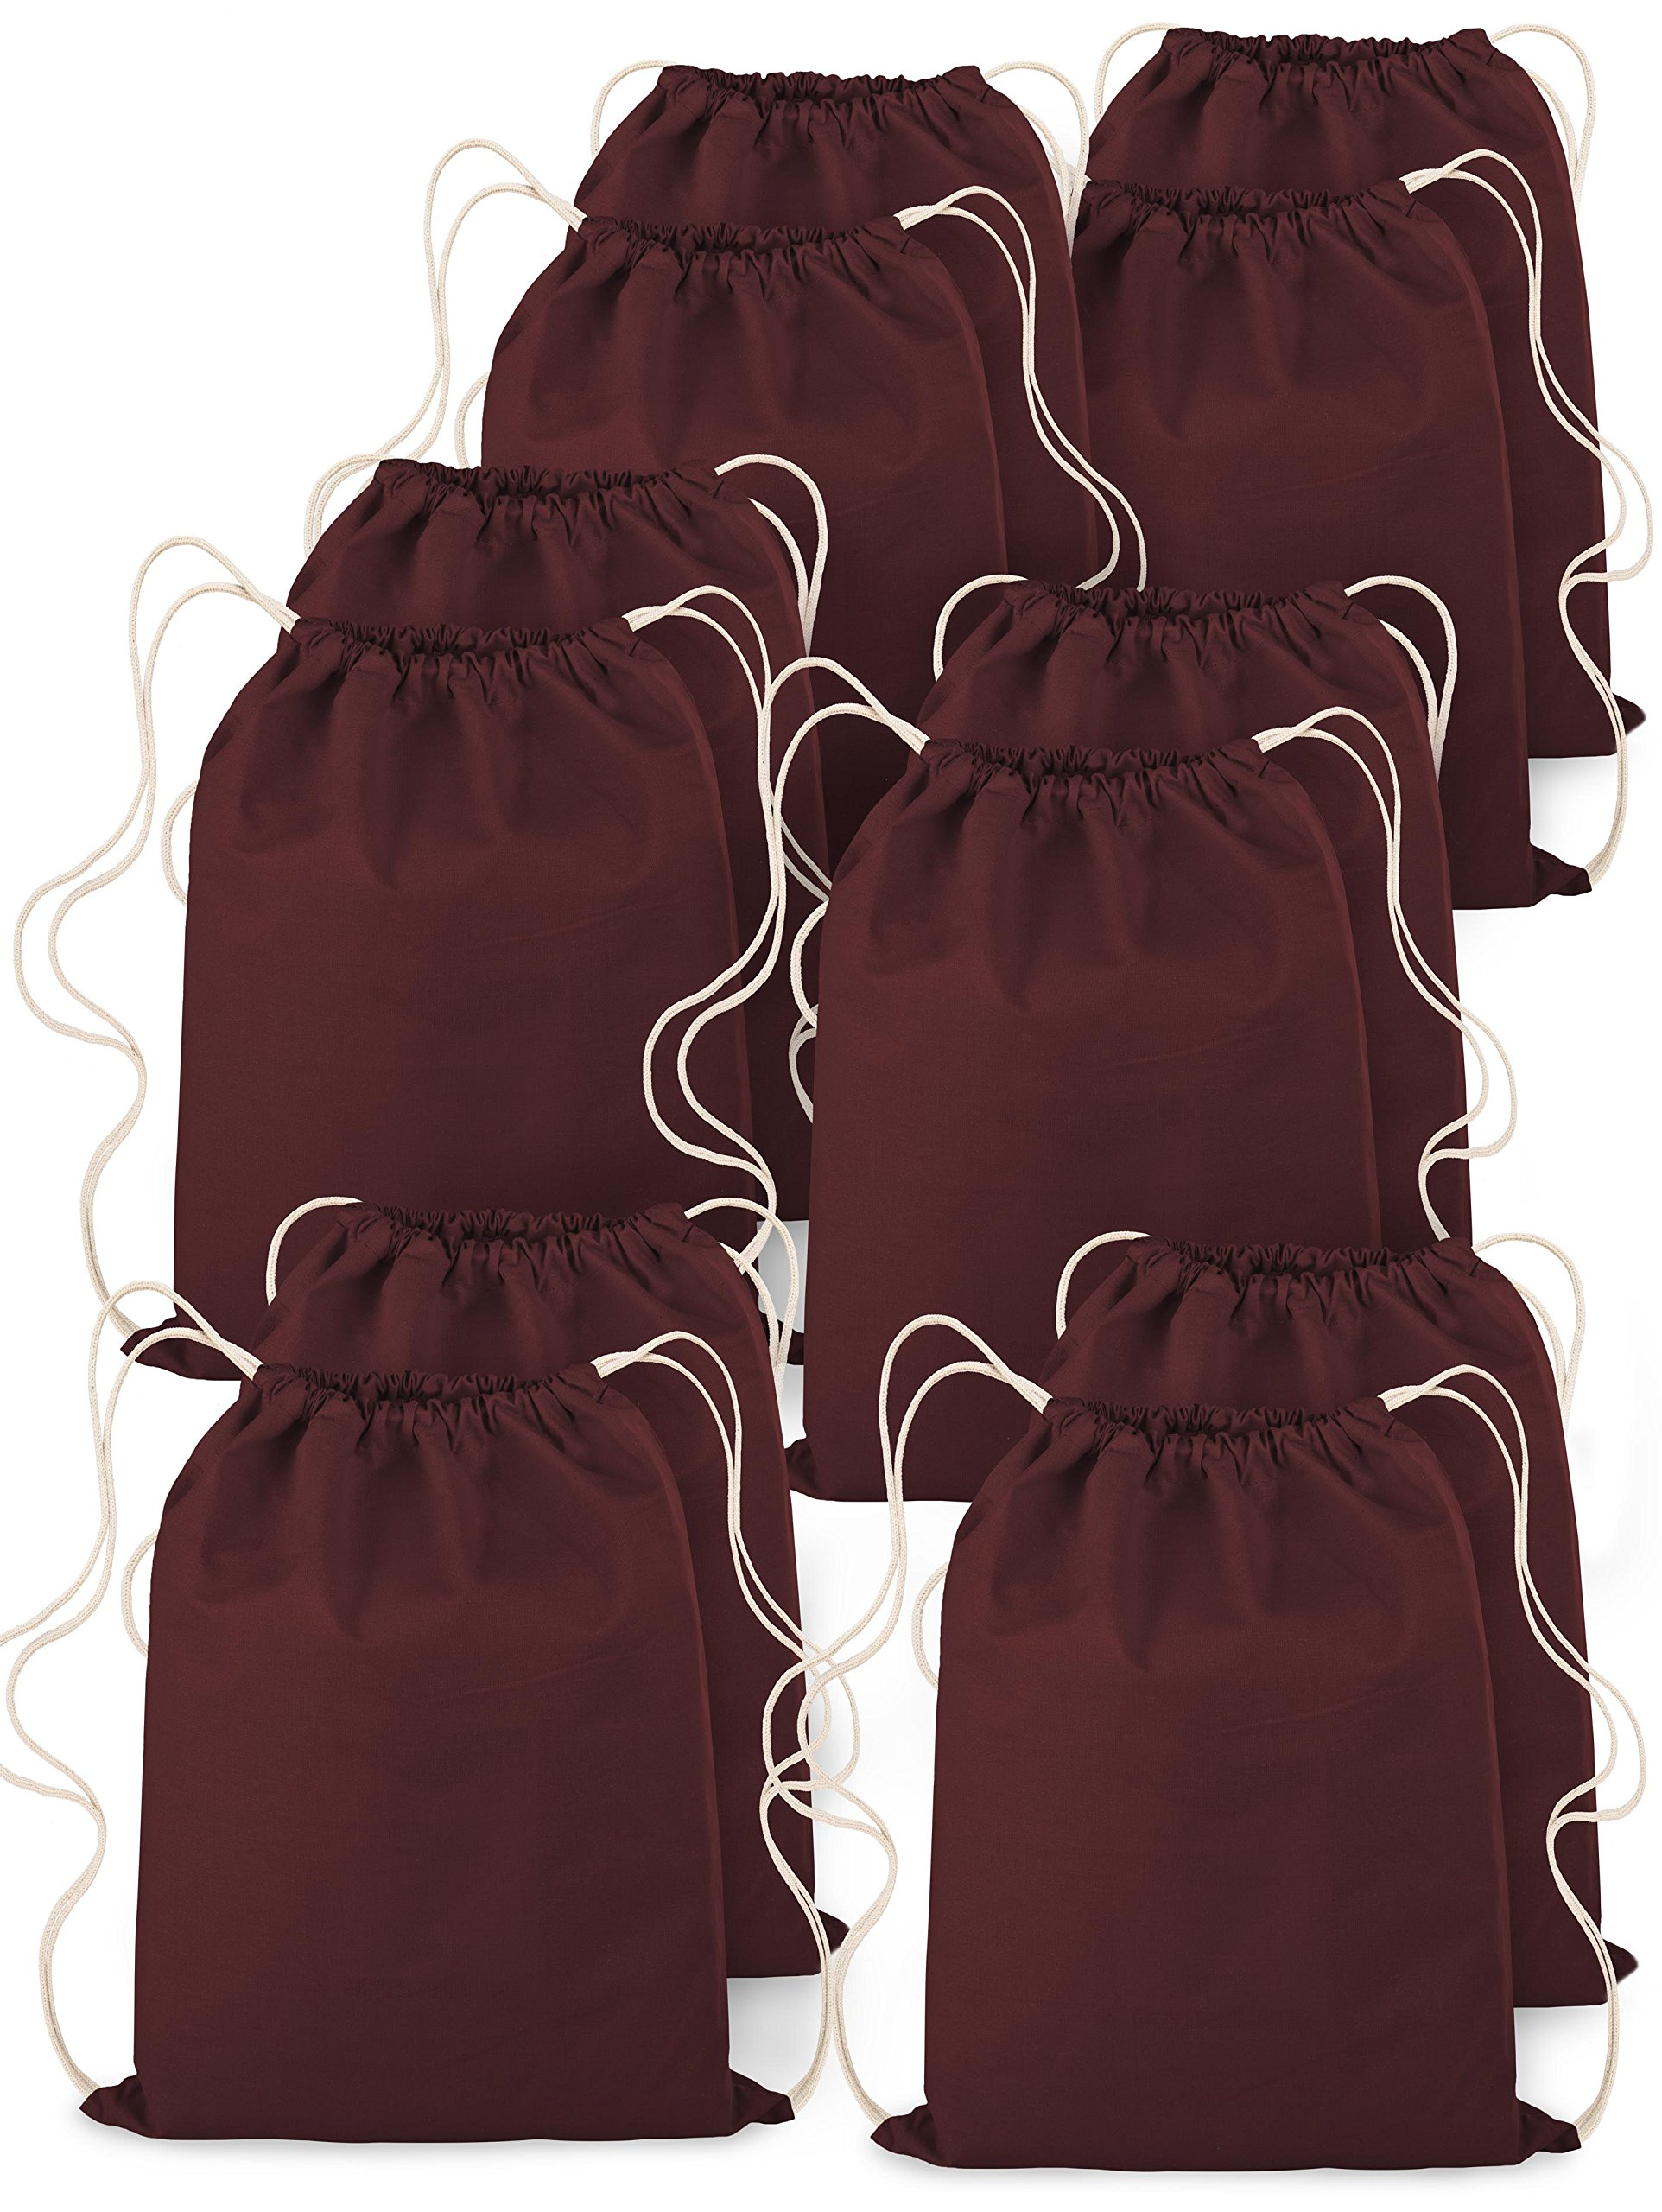 Backpack Drawstring Canvas On-The-Go Sportpack Bag Maroon 14''x18'' 100% Cotton Pack of 12